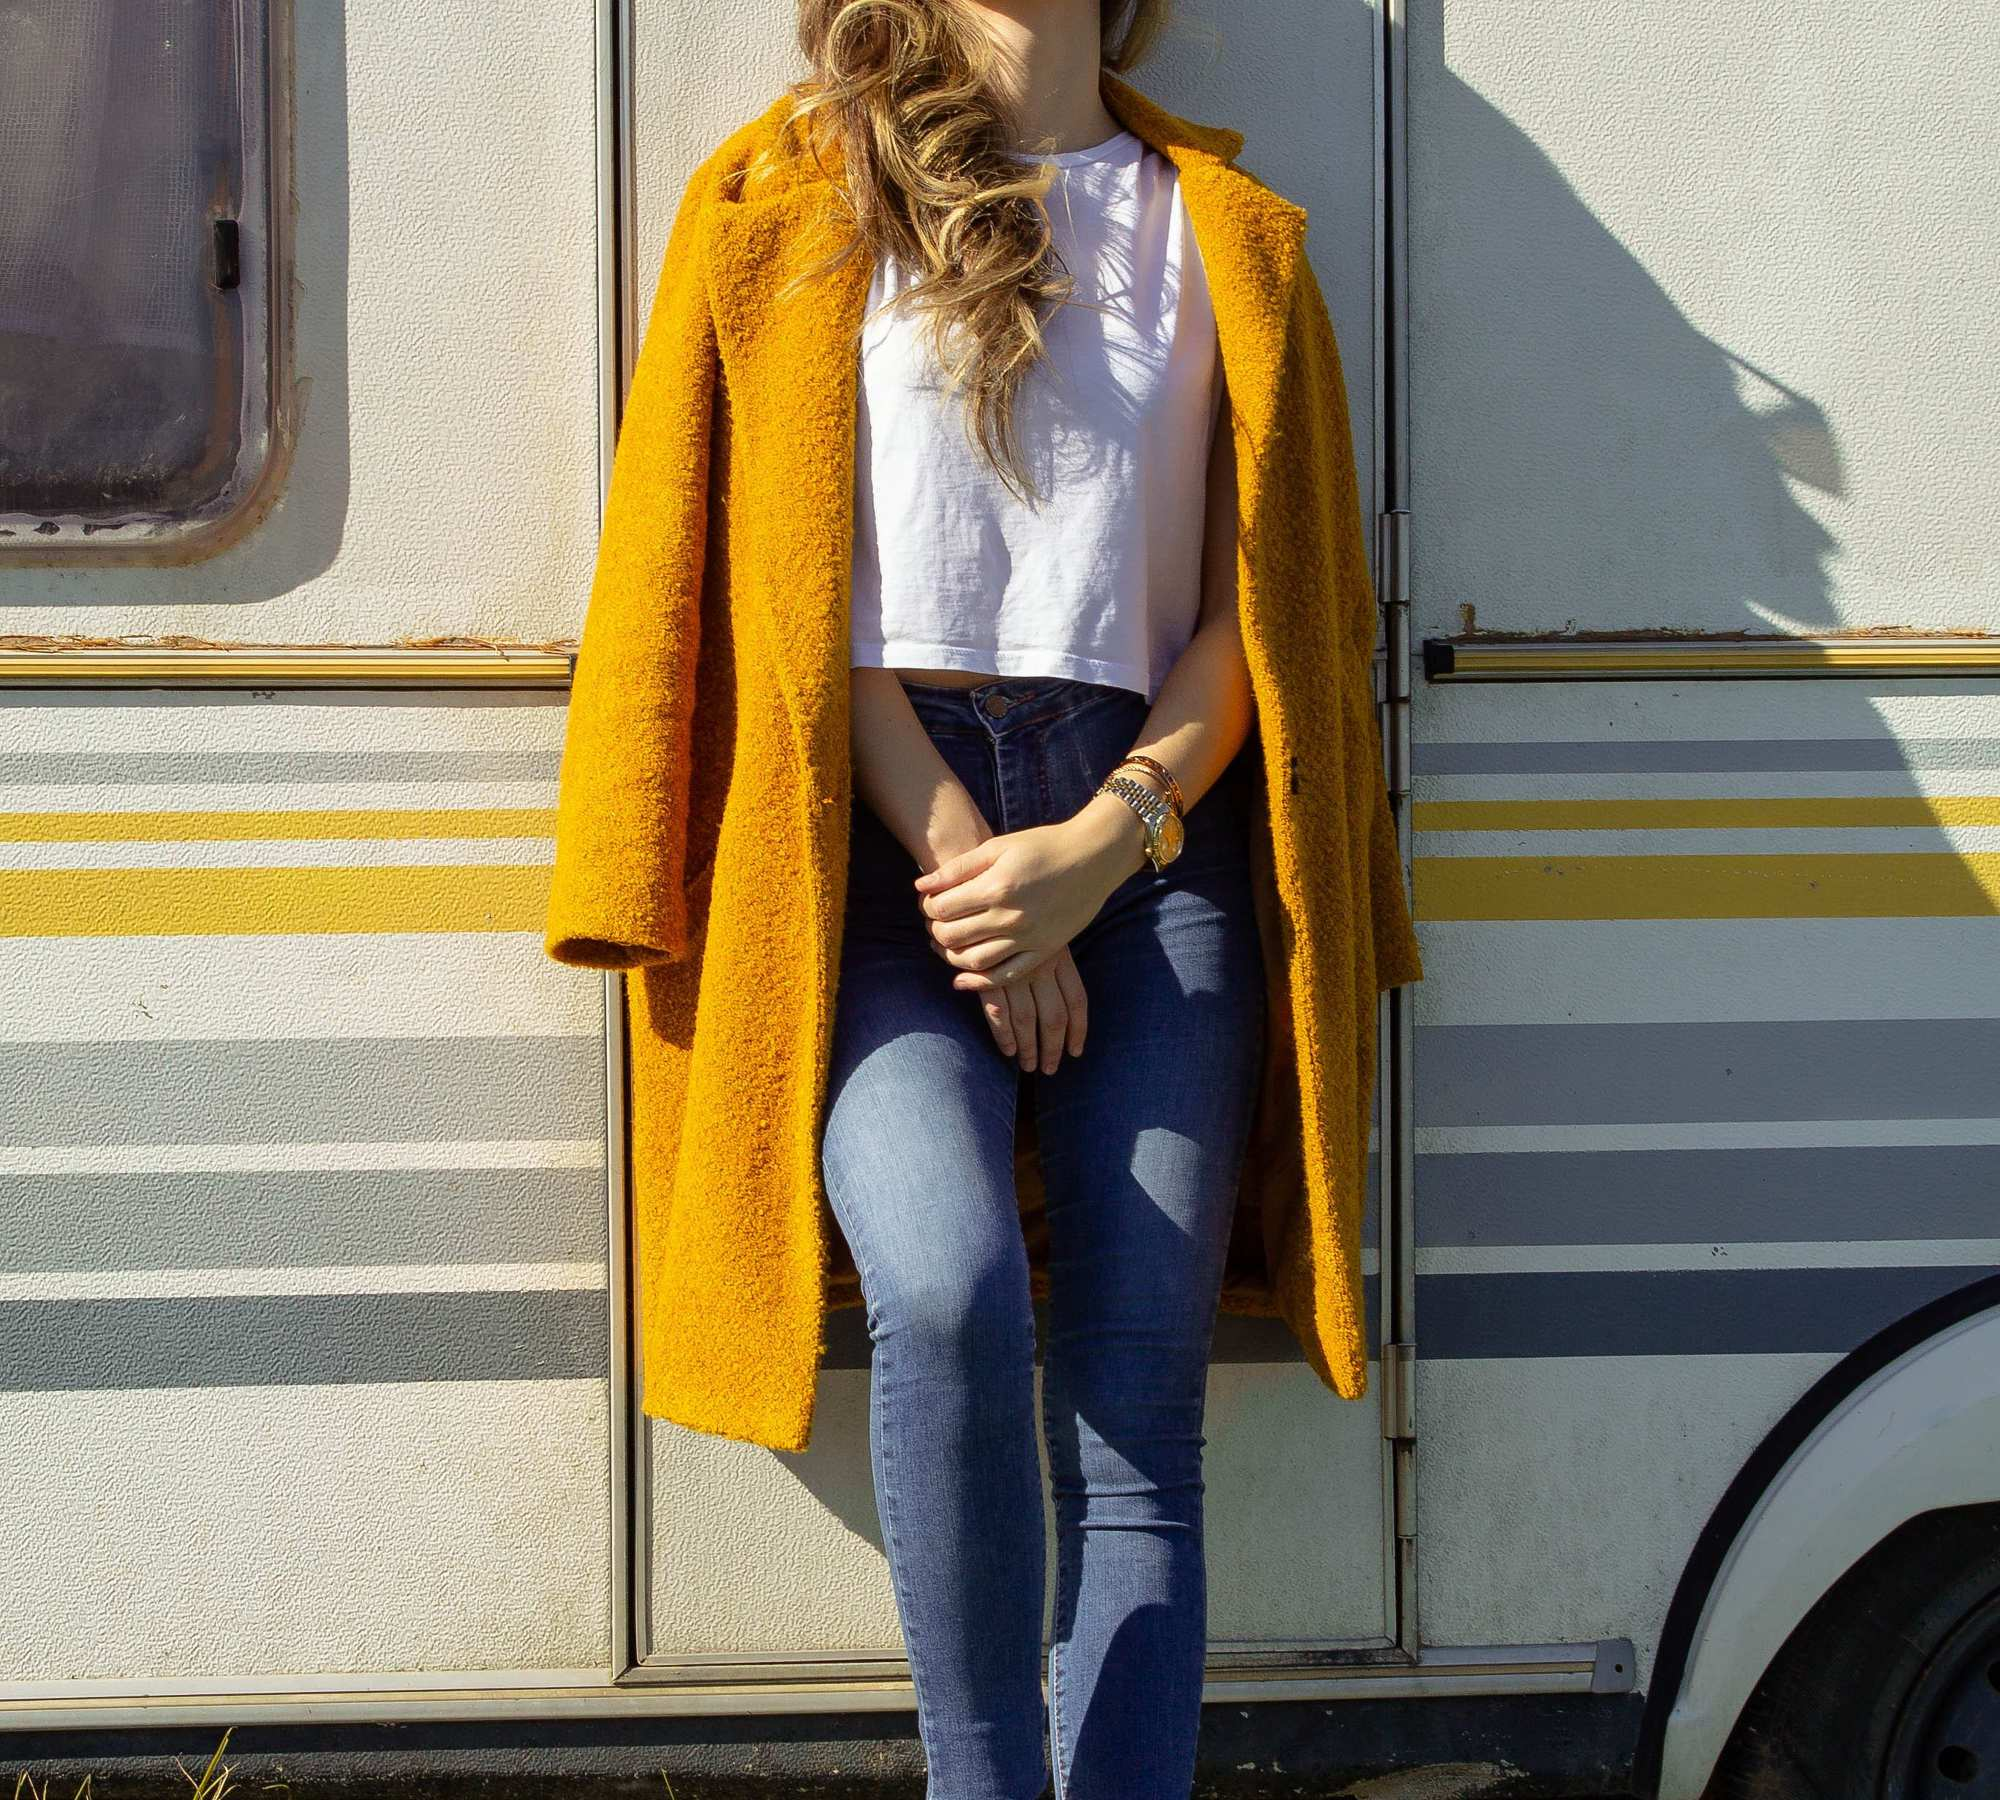 woman in front of yellow travel trailer